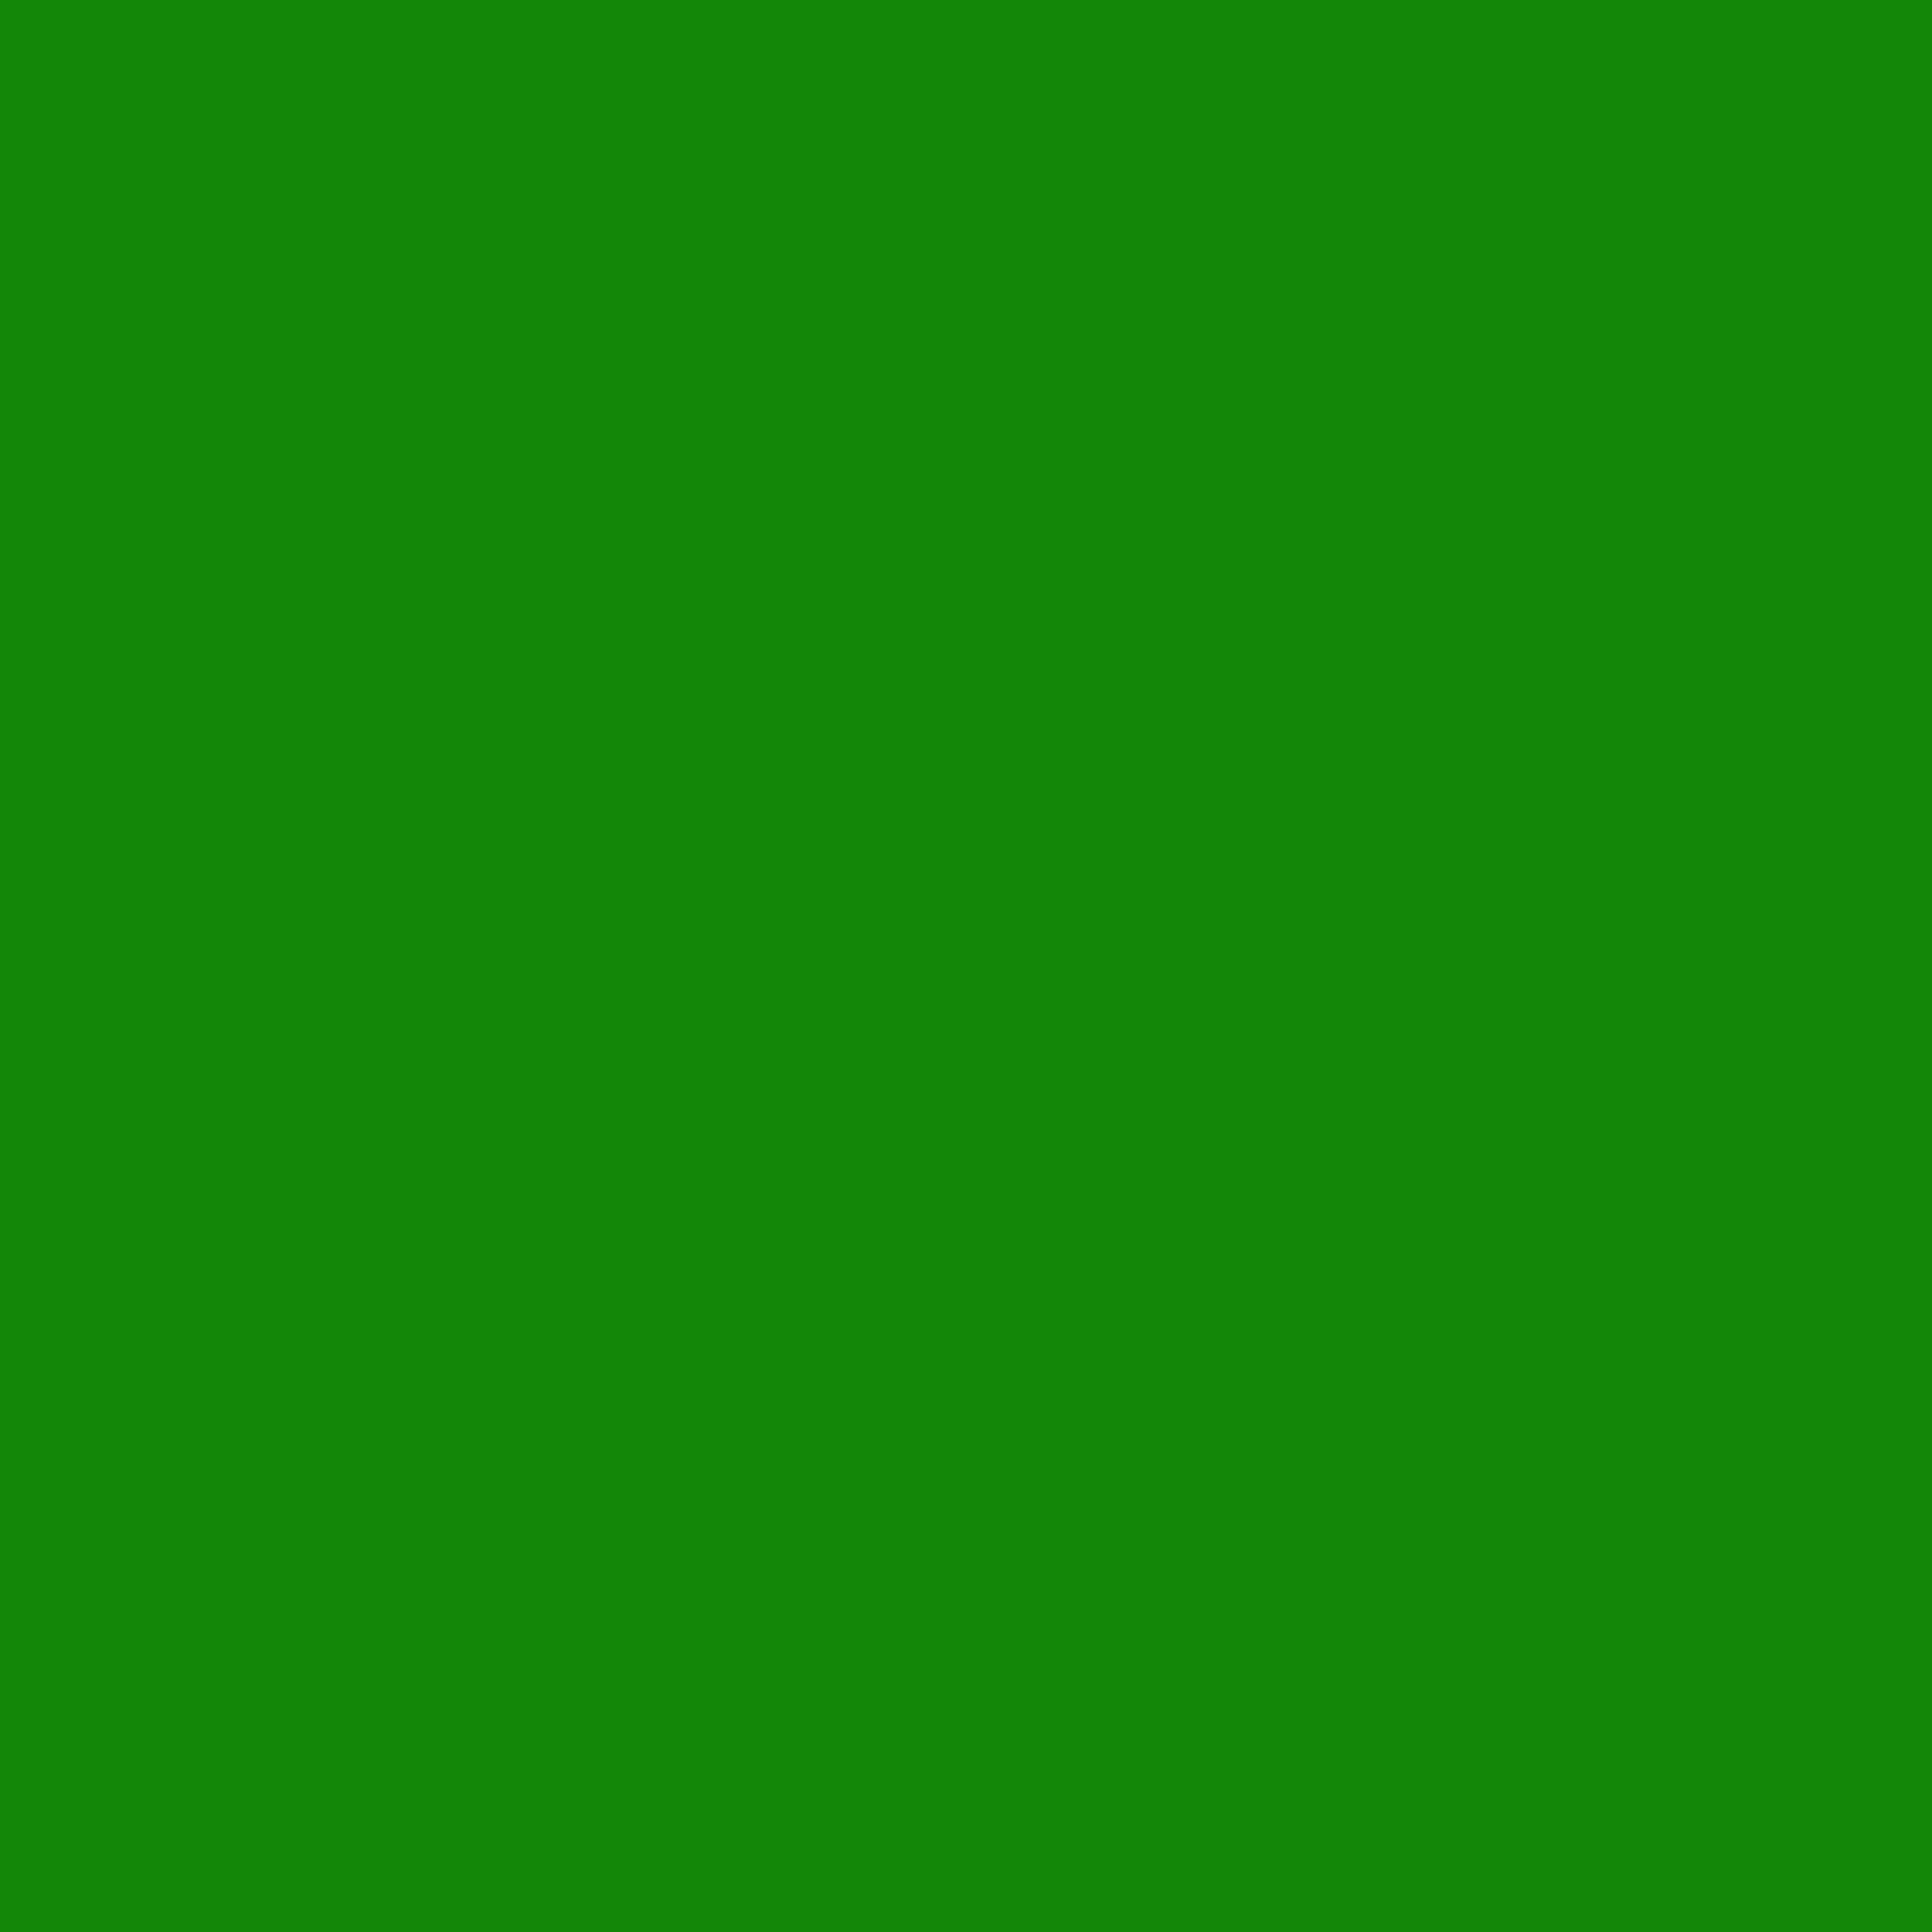 2048x2048 India Green Solid Color Background